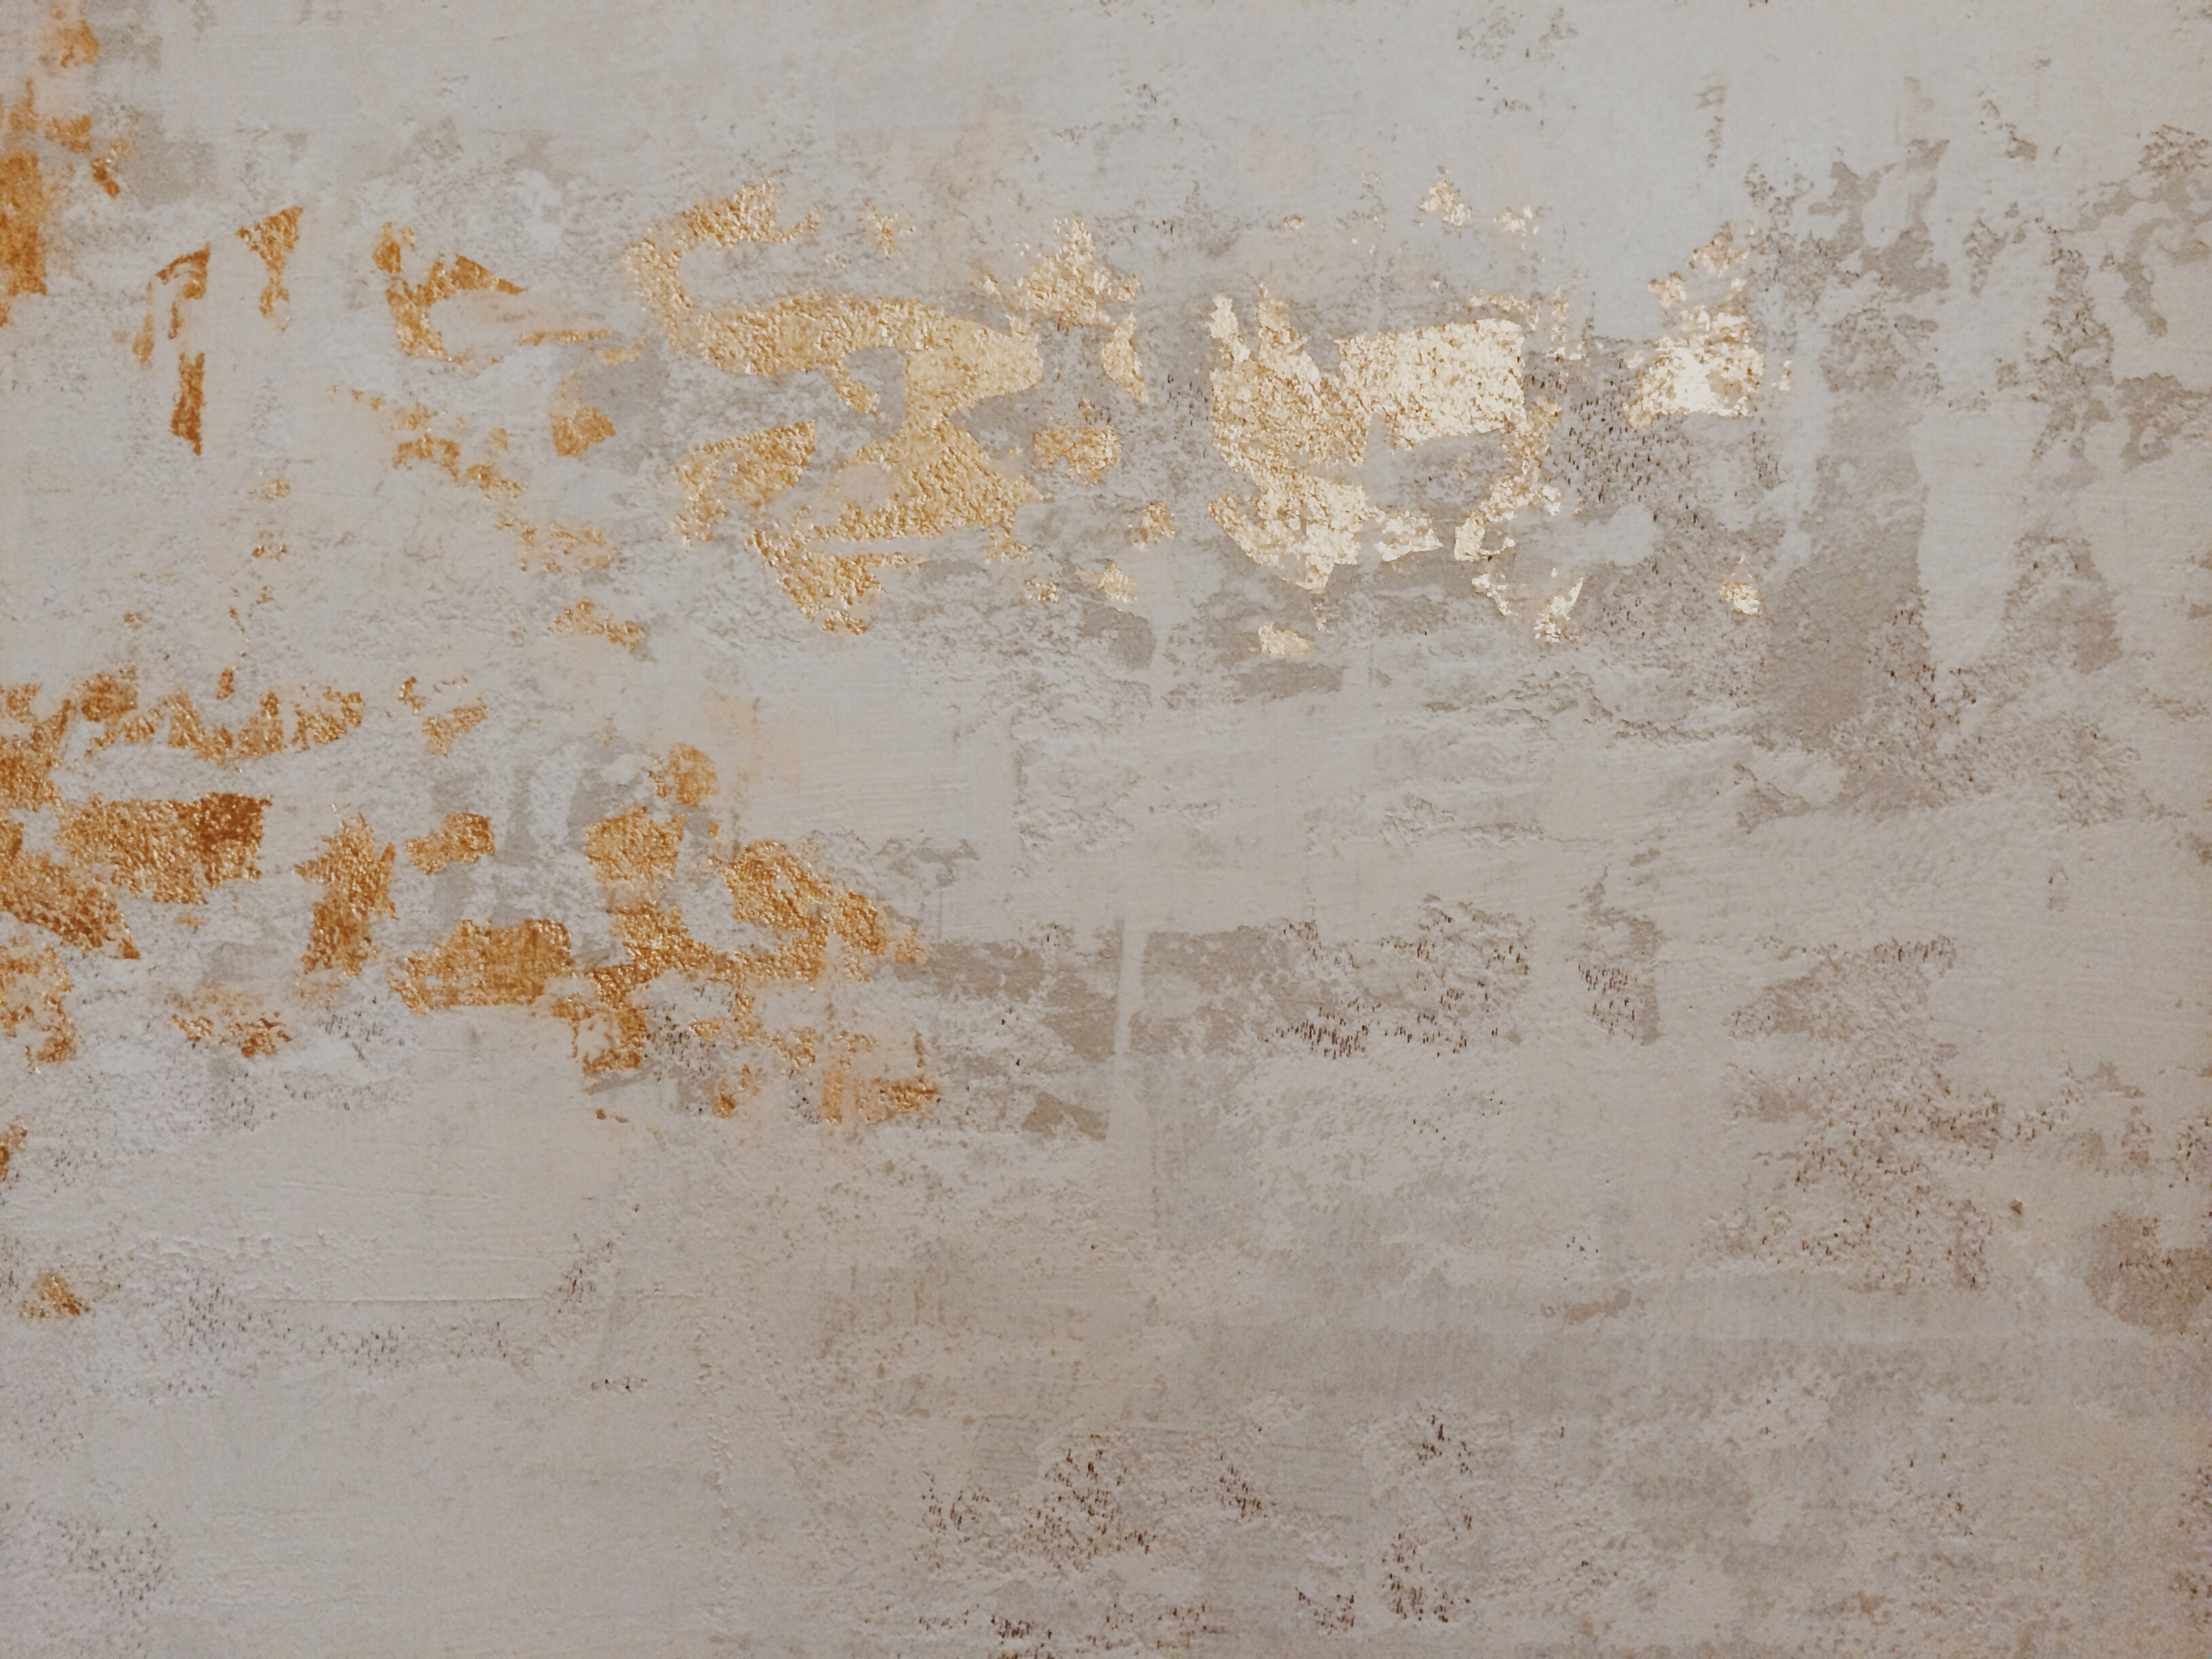 Blue-Eyed-Yonder-gilded-plaster-wall-this-would-be-so-fun-in-a-hallway-or-entry-wallpaper-wp5204734